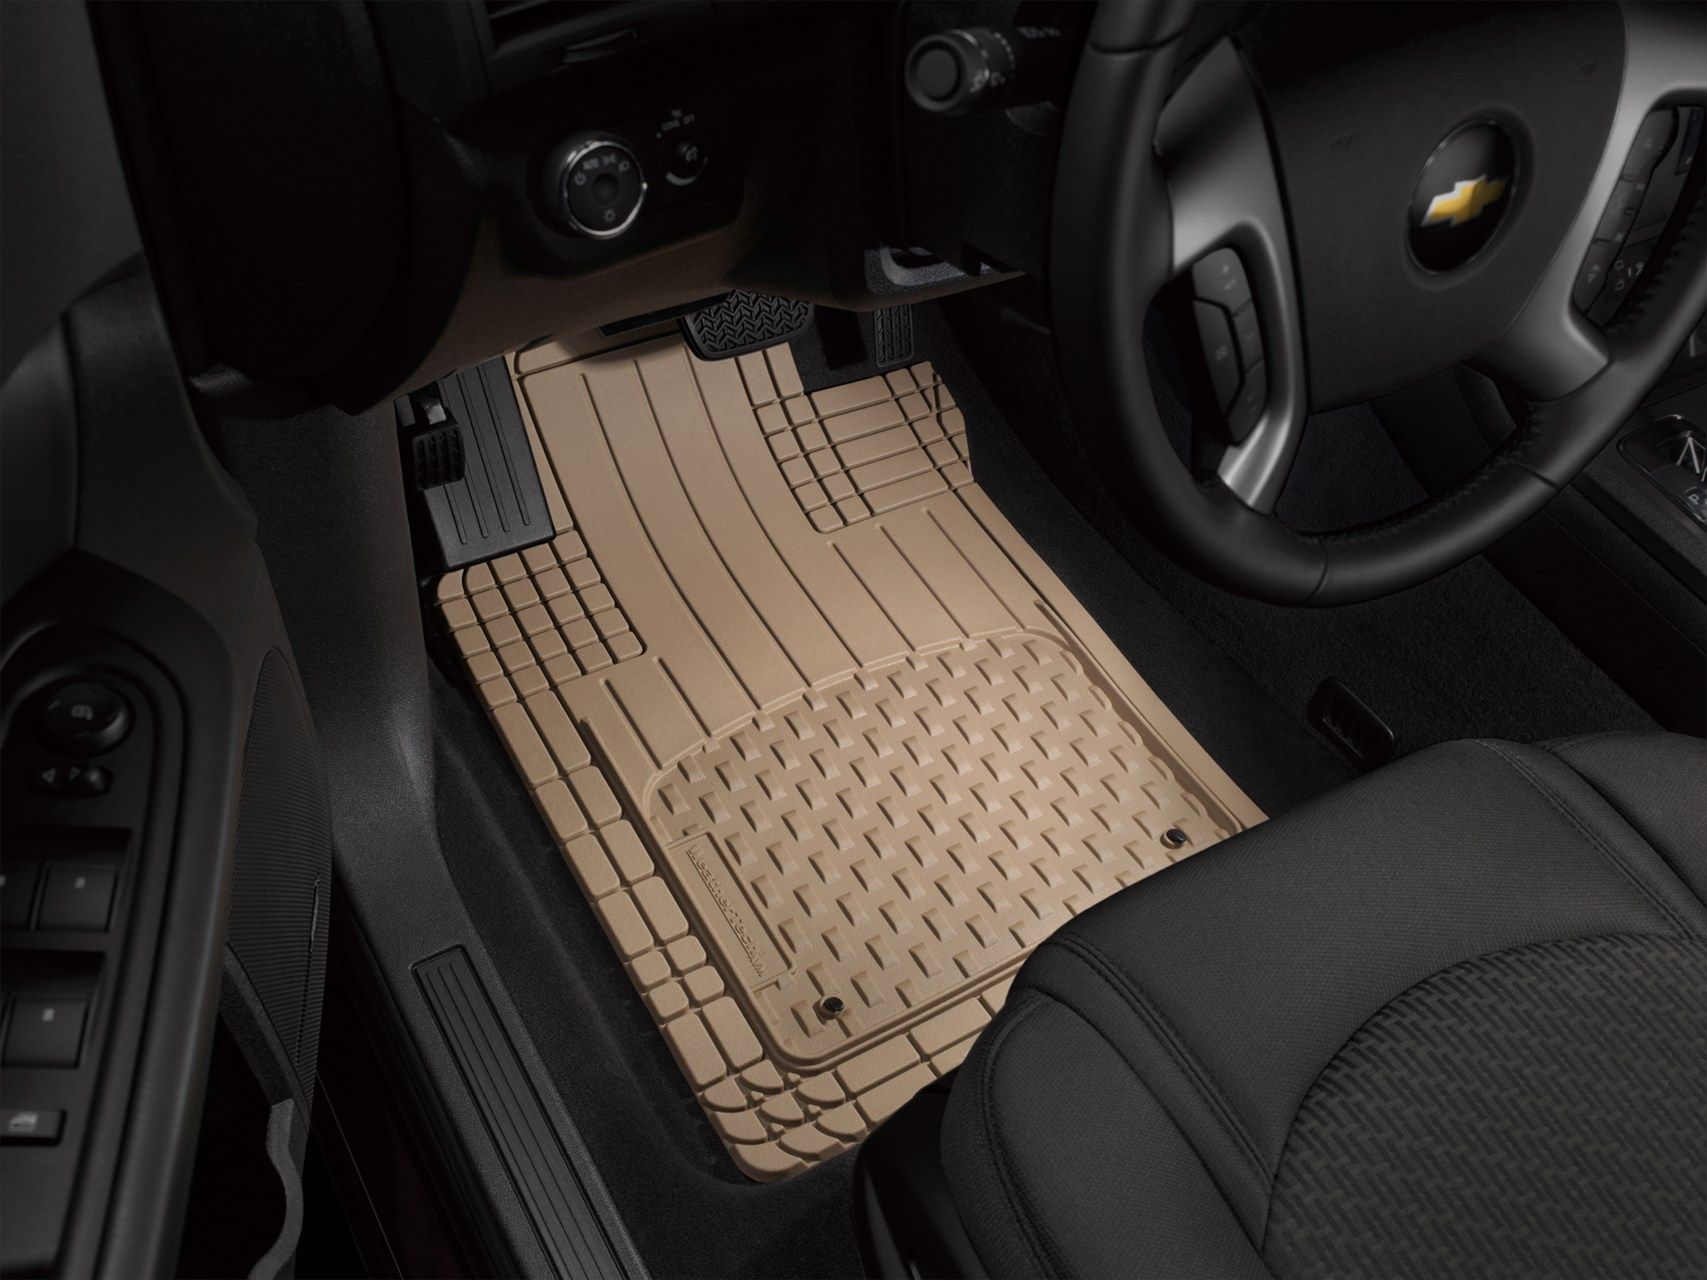 How to unlock weathertech floor mats - Parents Are You Looking For Affordable Floor Protection For Your Teen S Car Weathertech